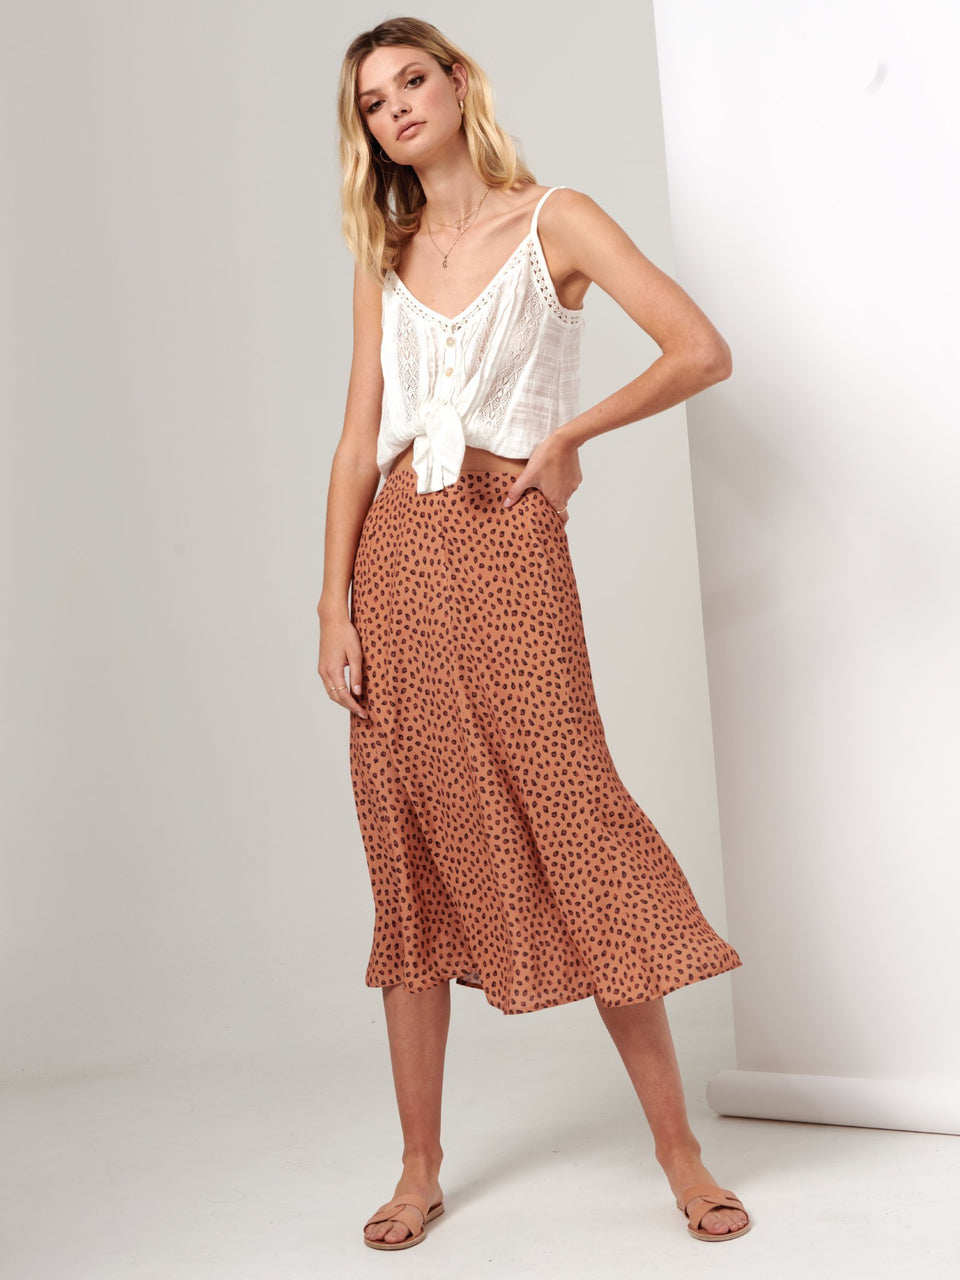 Kivari Stella Leopard Skirt - Orange Leopard